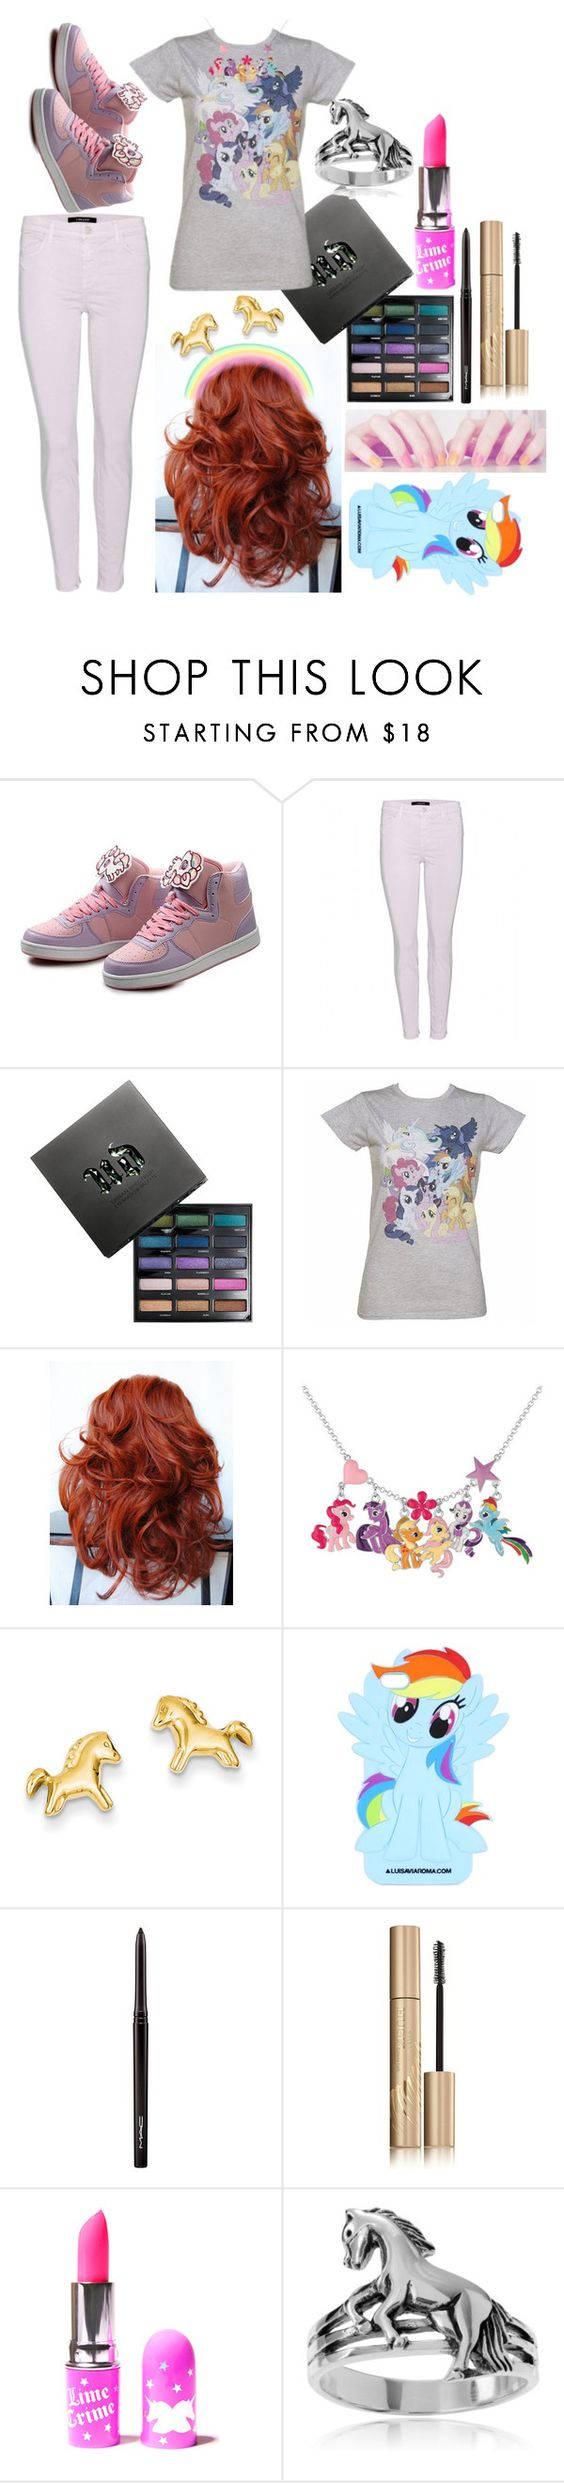 """""""Anya: February 4, 2016"""" by disneyfreaks39 ❤ liked on Polyvore featuring J Brand, Urban Decay, My Little Pony, Kevin Jewelers, MAC Cosmetics, Stila, Lime Crime and Journee Collection"""